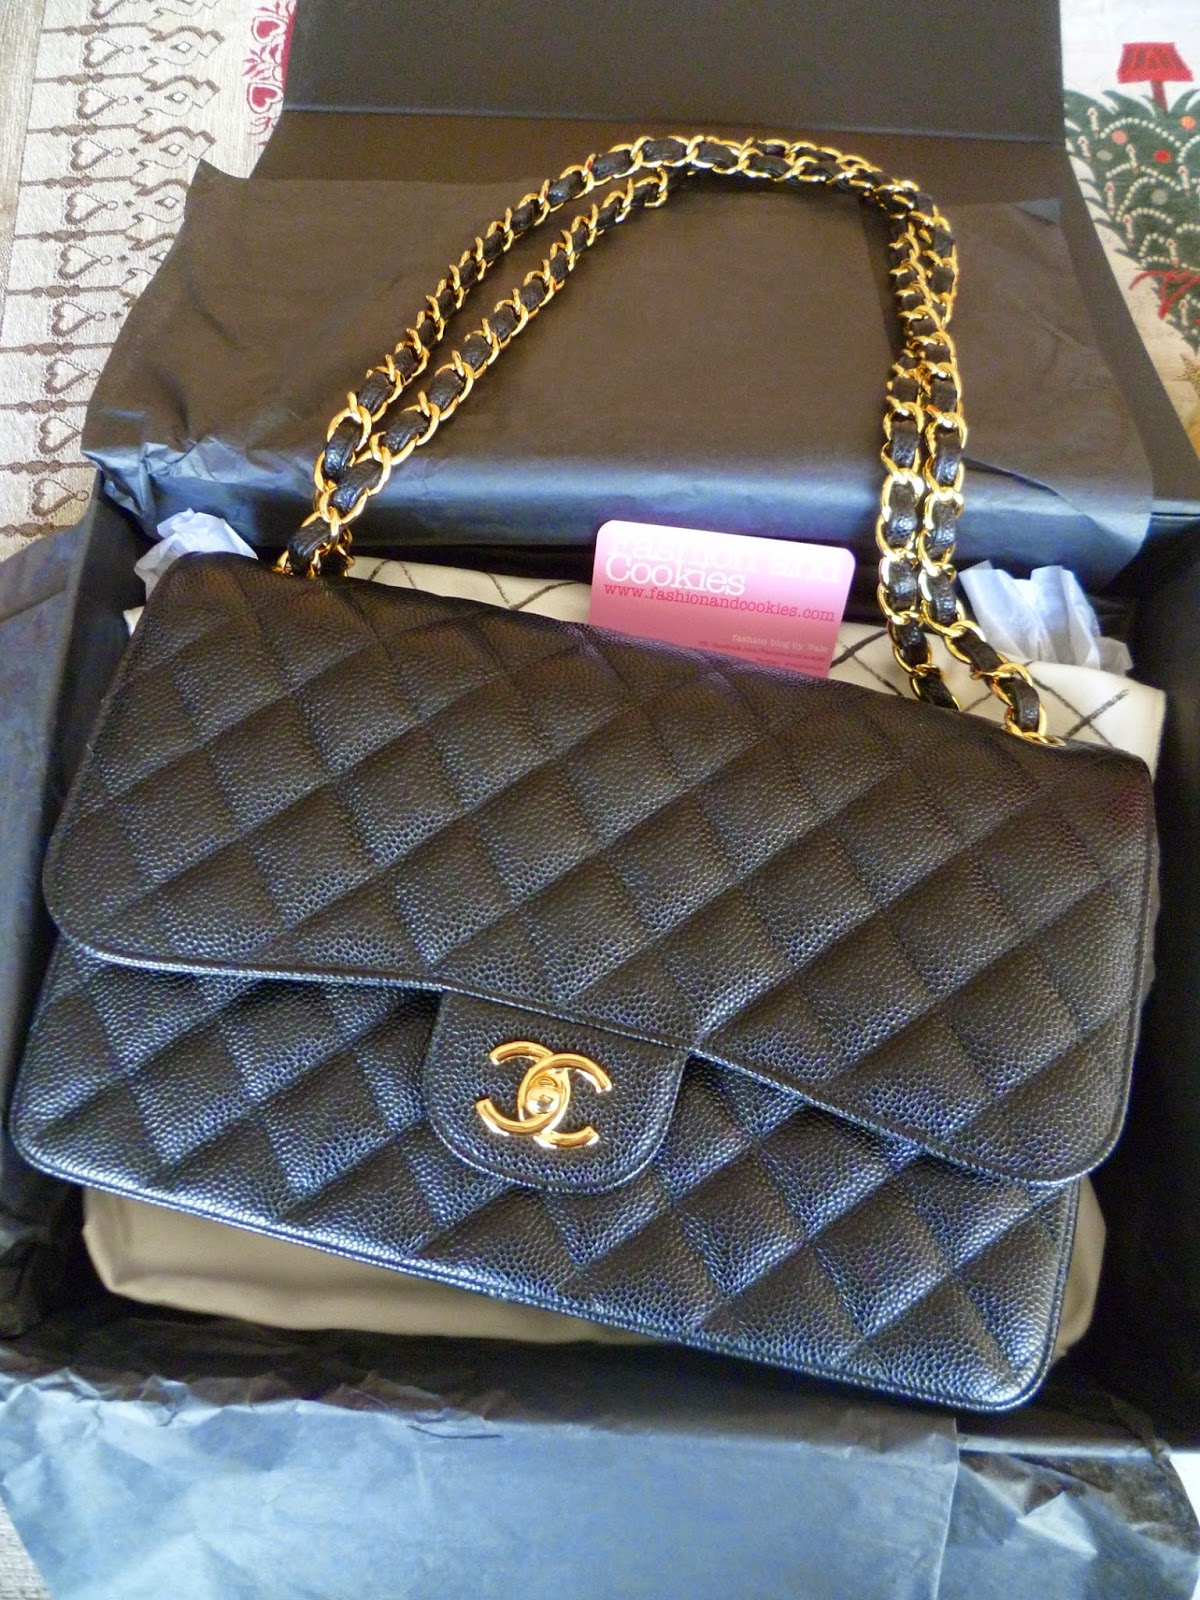 Chanel 2.55 classic flap bag in grained calfskin leather on Fashion and Cookies fashion blog